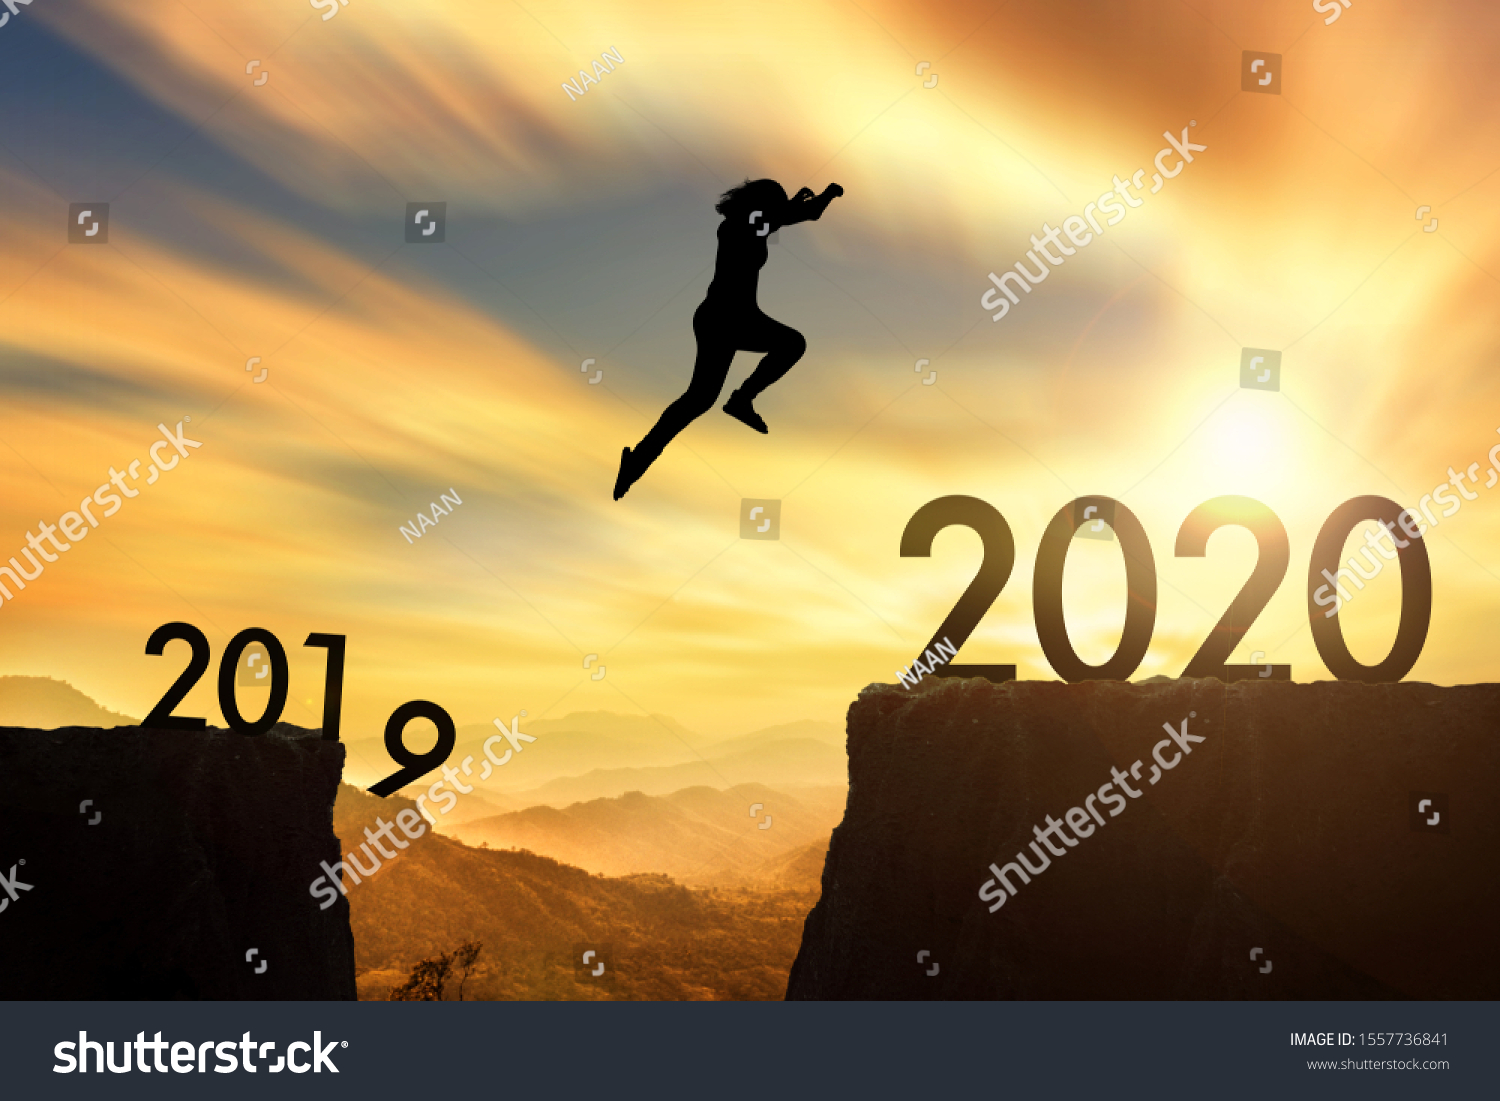 The woman jumping from 2019 cliff to 2020 cliff on sunrise time #1557736841